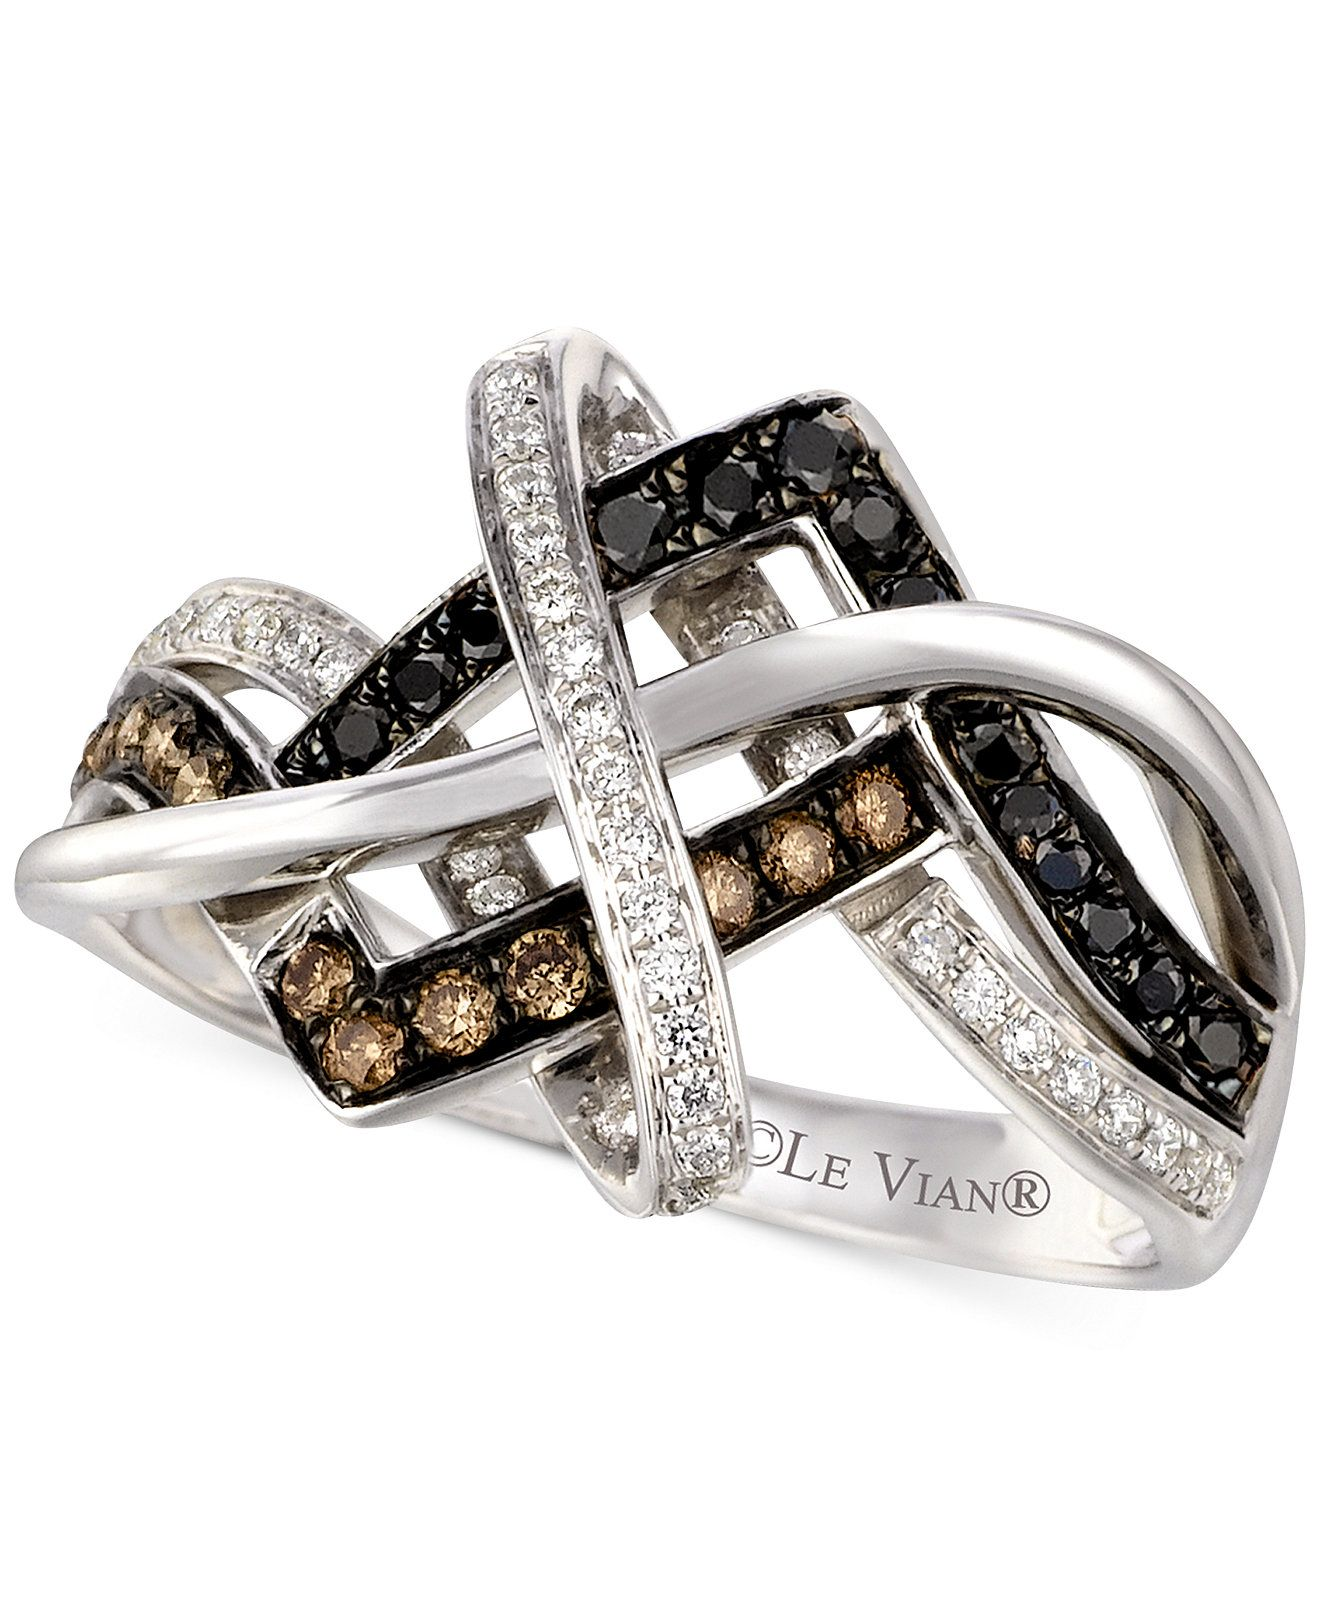 everlon diamond knot ring collection wedding set jewelry